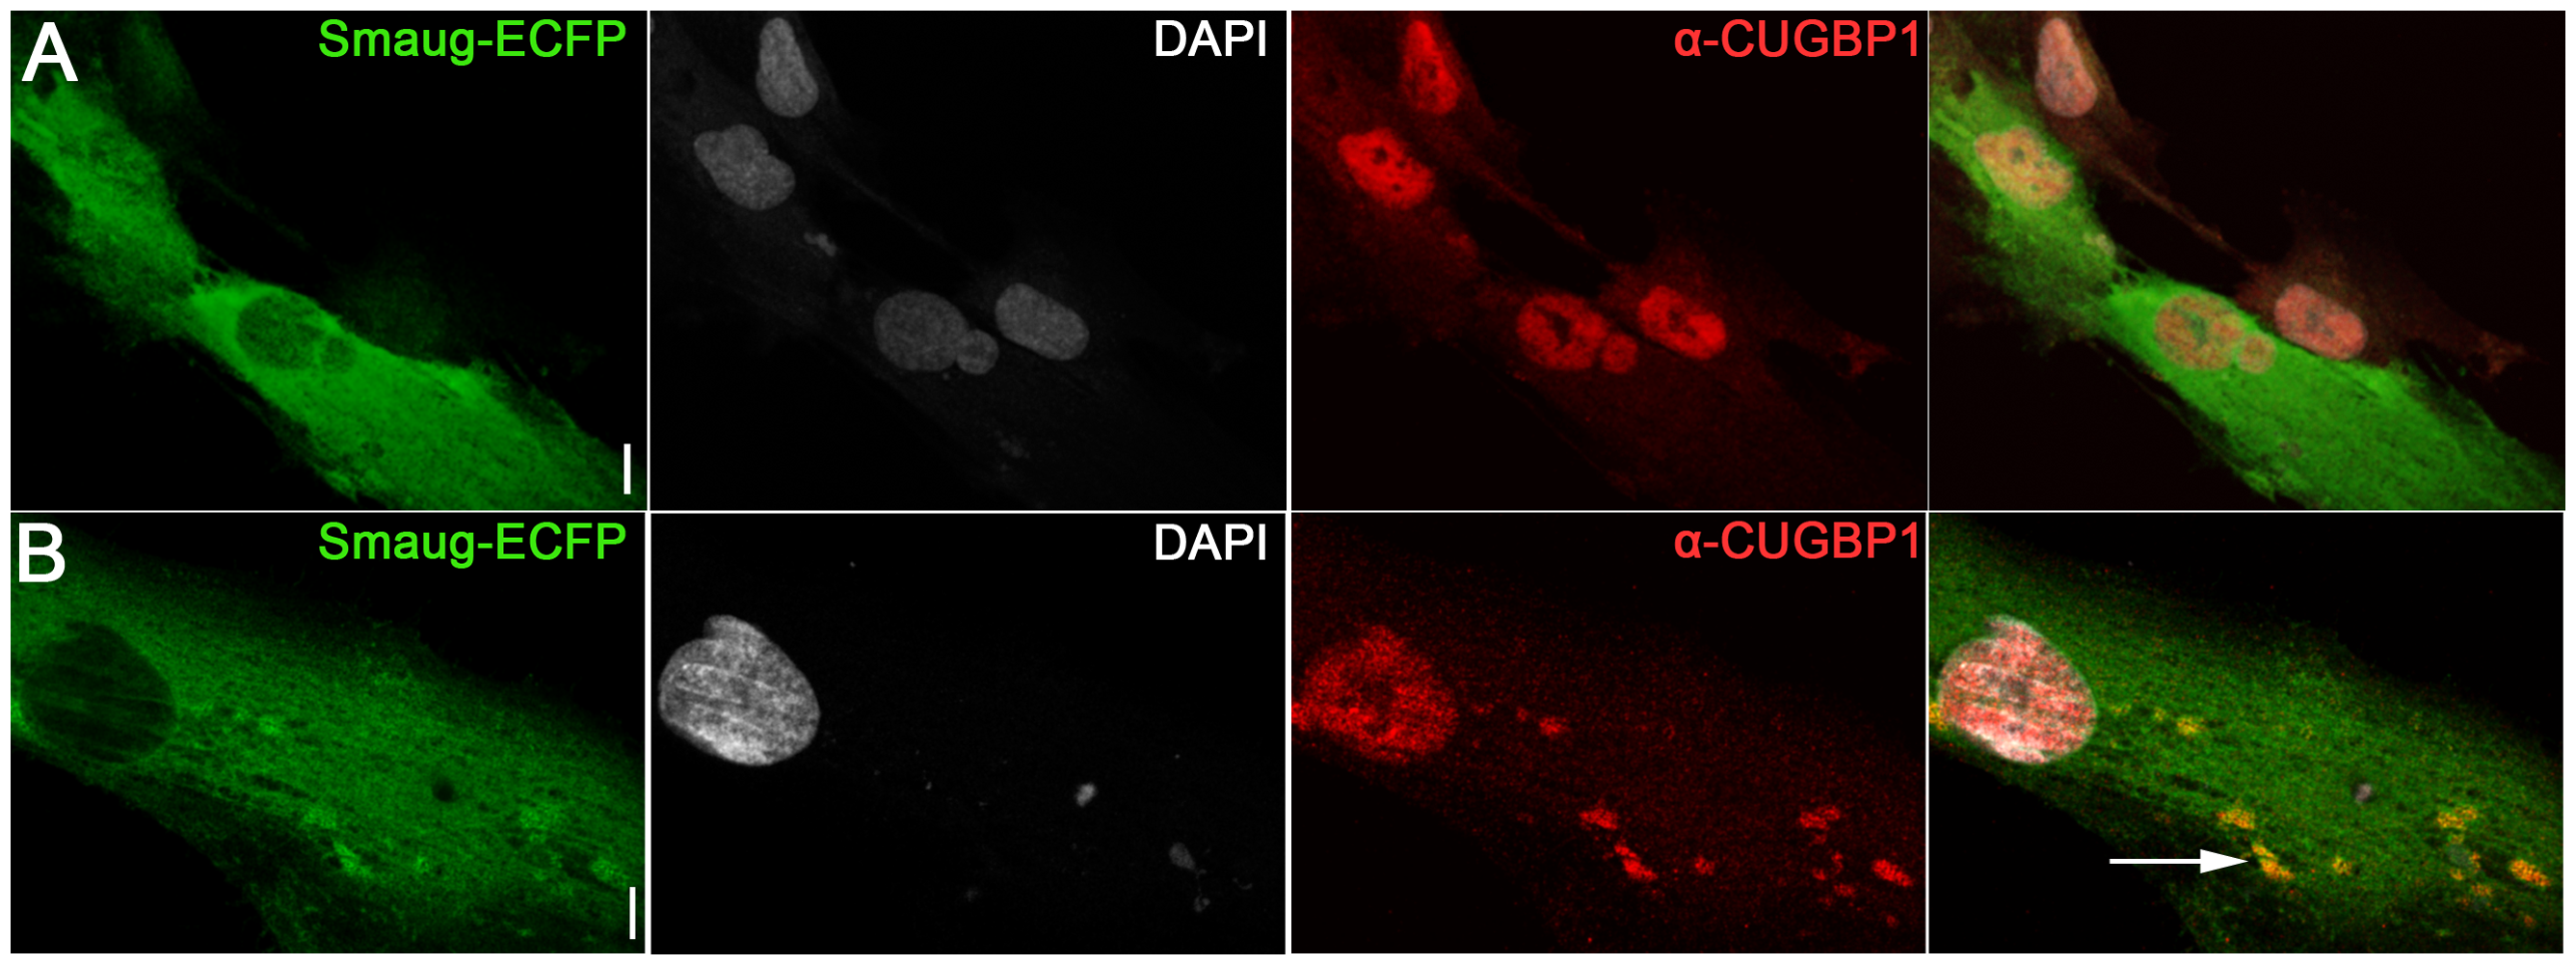 Expression of SMAUG1 in control human myoblasts does not affect CUGBP1 nuclear localization.